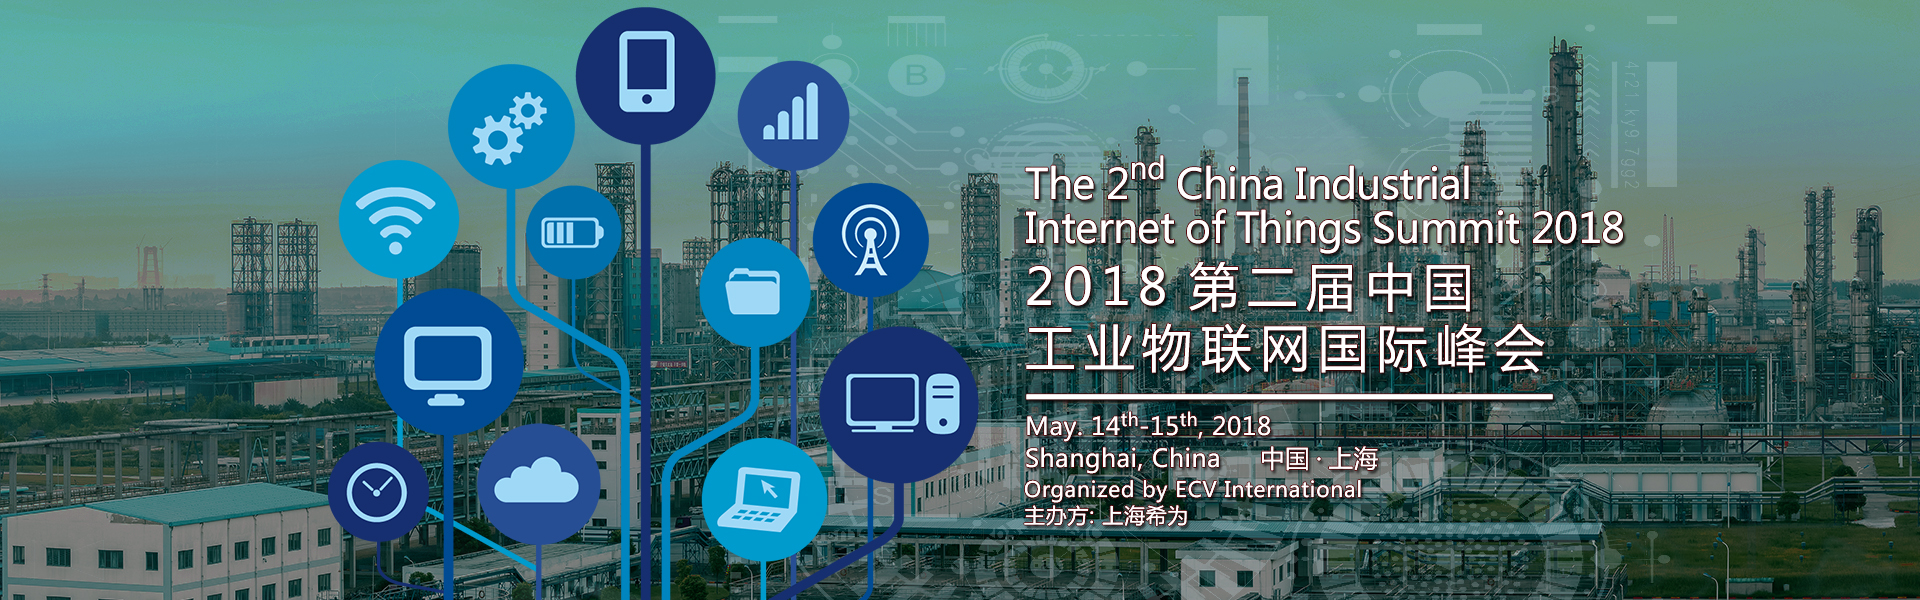 The 2rd China Industrial Internet of Things (IIoT)  Summit 2018